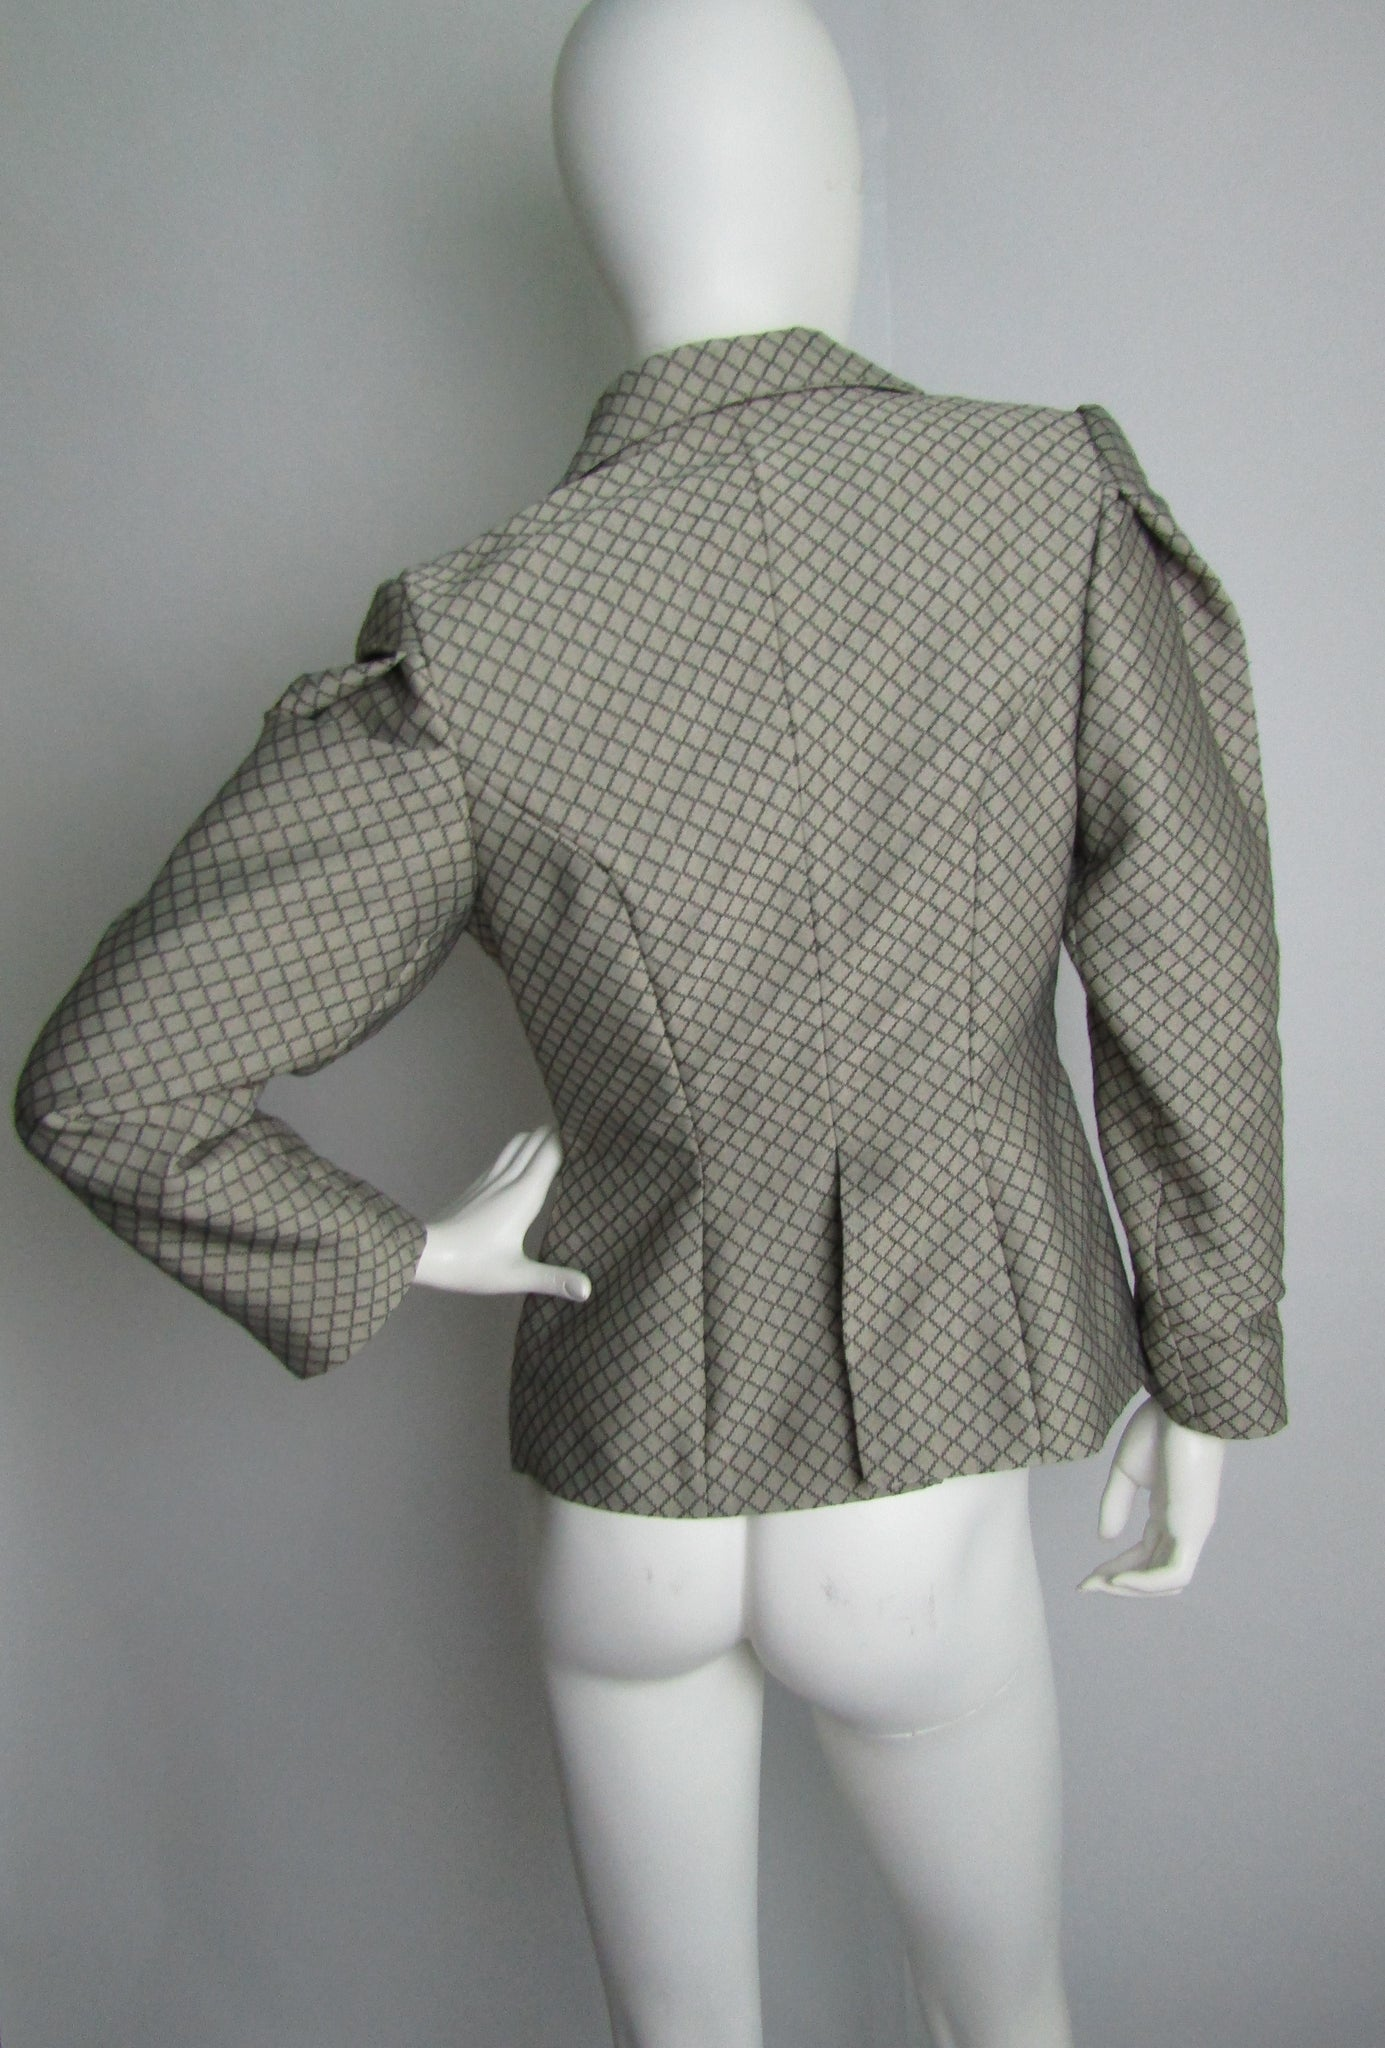 SPECKLED JACKET